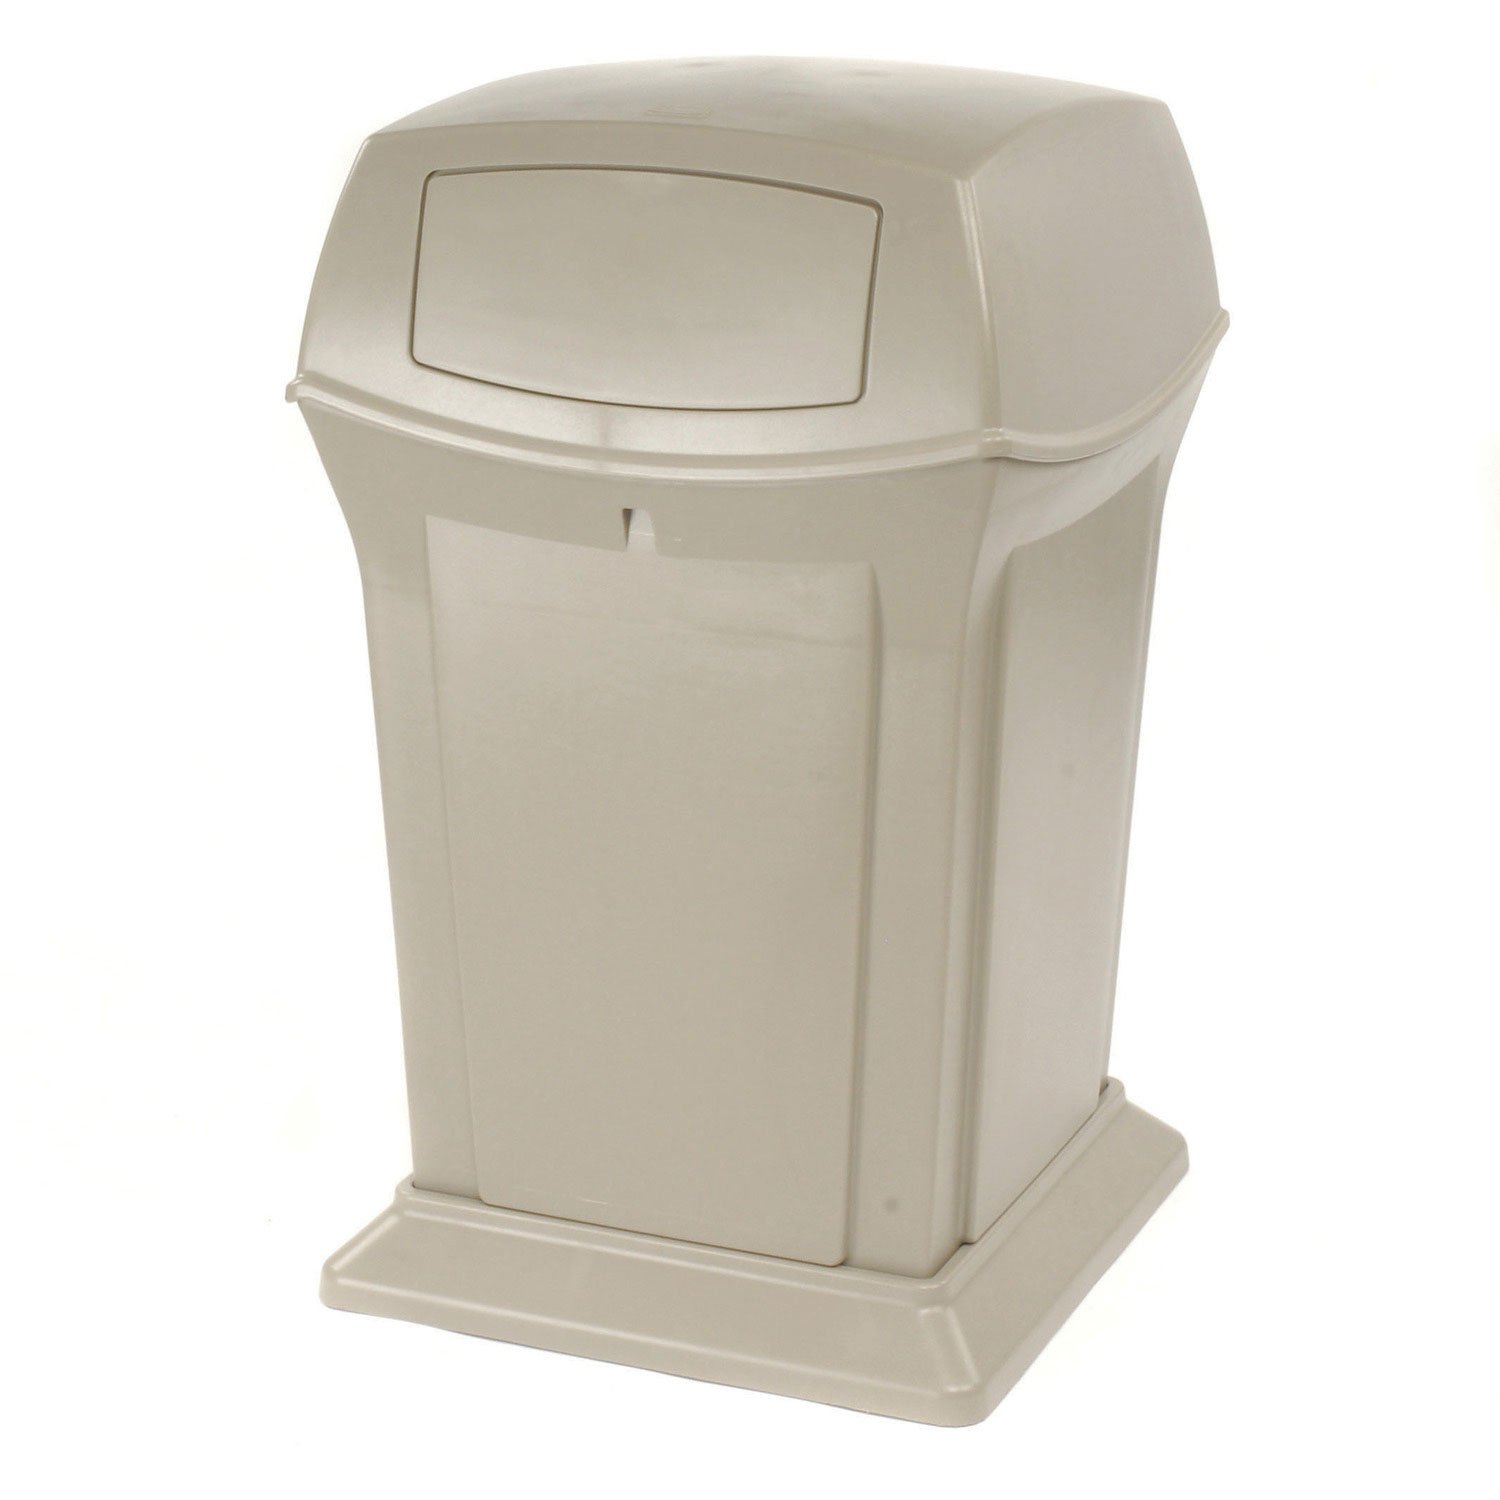 Rubbermaid Commercial Ranger Container with 2 Doors, 45 Gallon Capacity, 24-7/8-Inch Length x 24-7/8-Inch Width x 41-1/2-Inch Height, Beige (FG917188BEIG ) by Rubbermaid Commercial Products